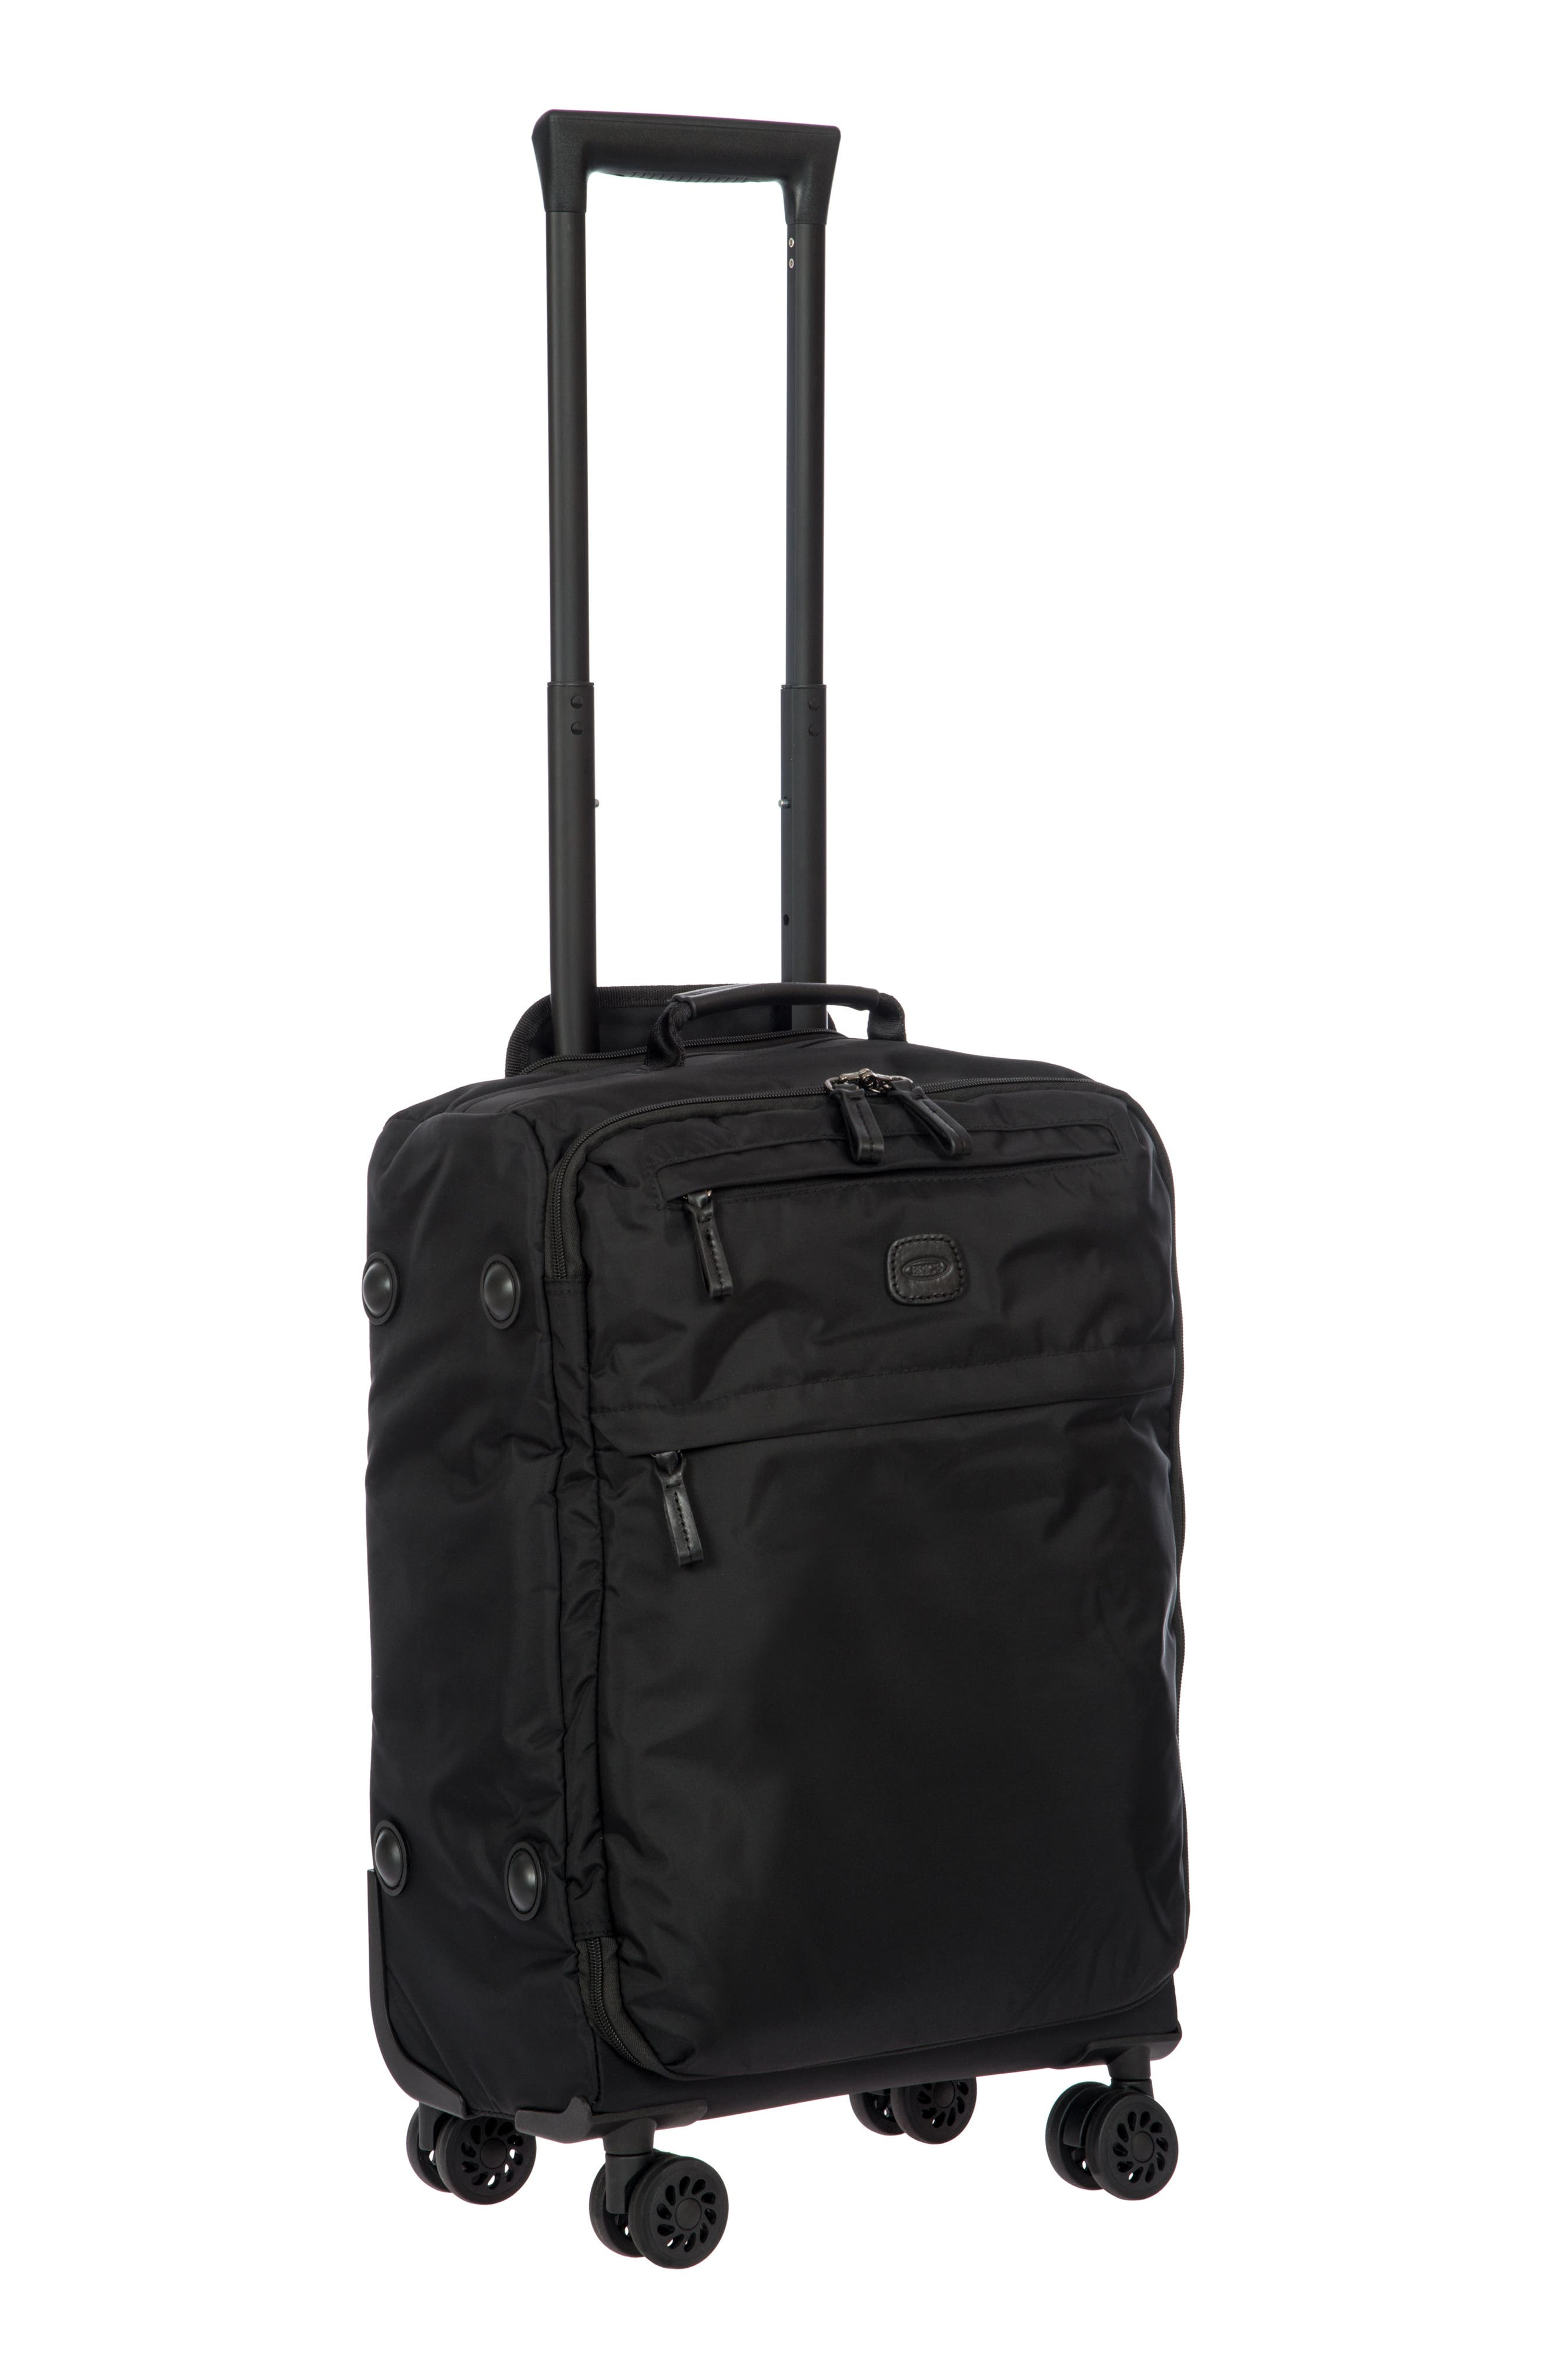 X-Bag 21-Inch Spinner Carry-On,                             Alternate thumbnail 6, color,                             BLACK/ BLACK